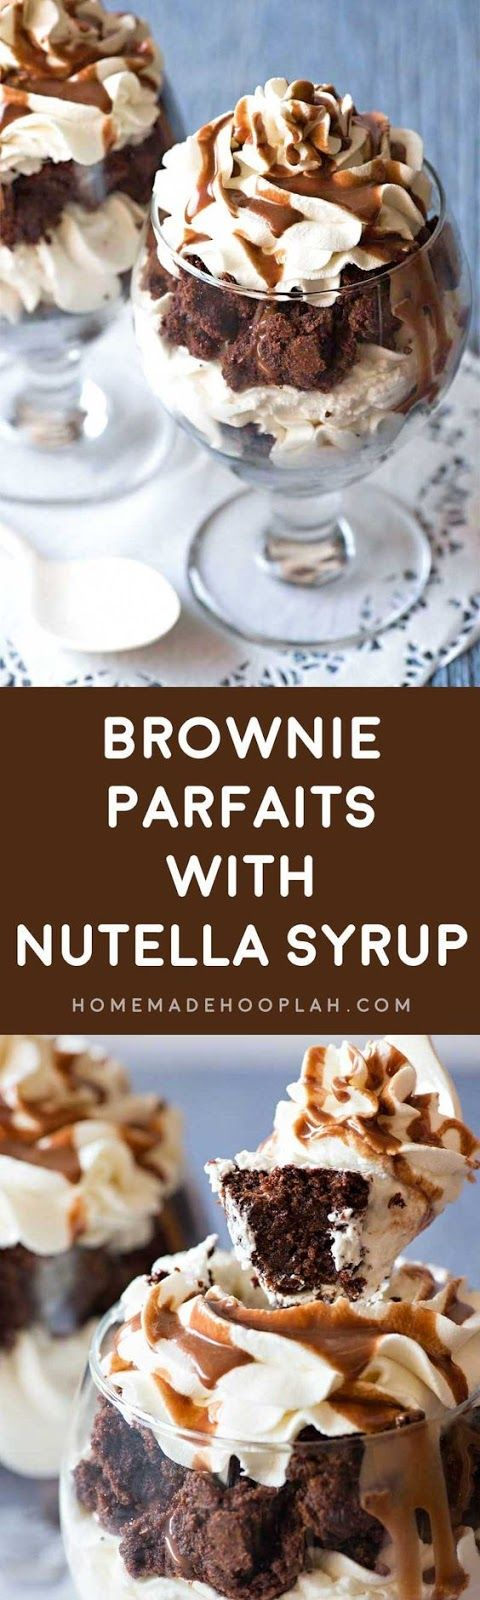 Ingredients   2 cups heavy cream cold   1 tsp vanilla extract   1 cup powdered sugar divided   1 tbsp unsweetened cocoa powder   3 tbsp...